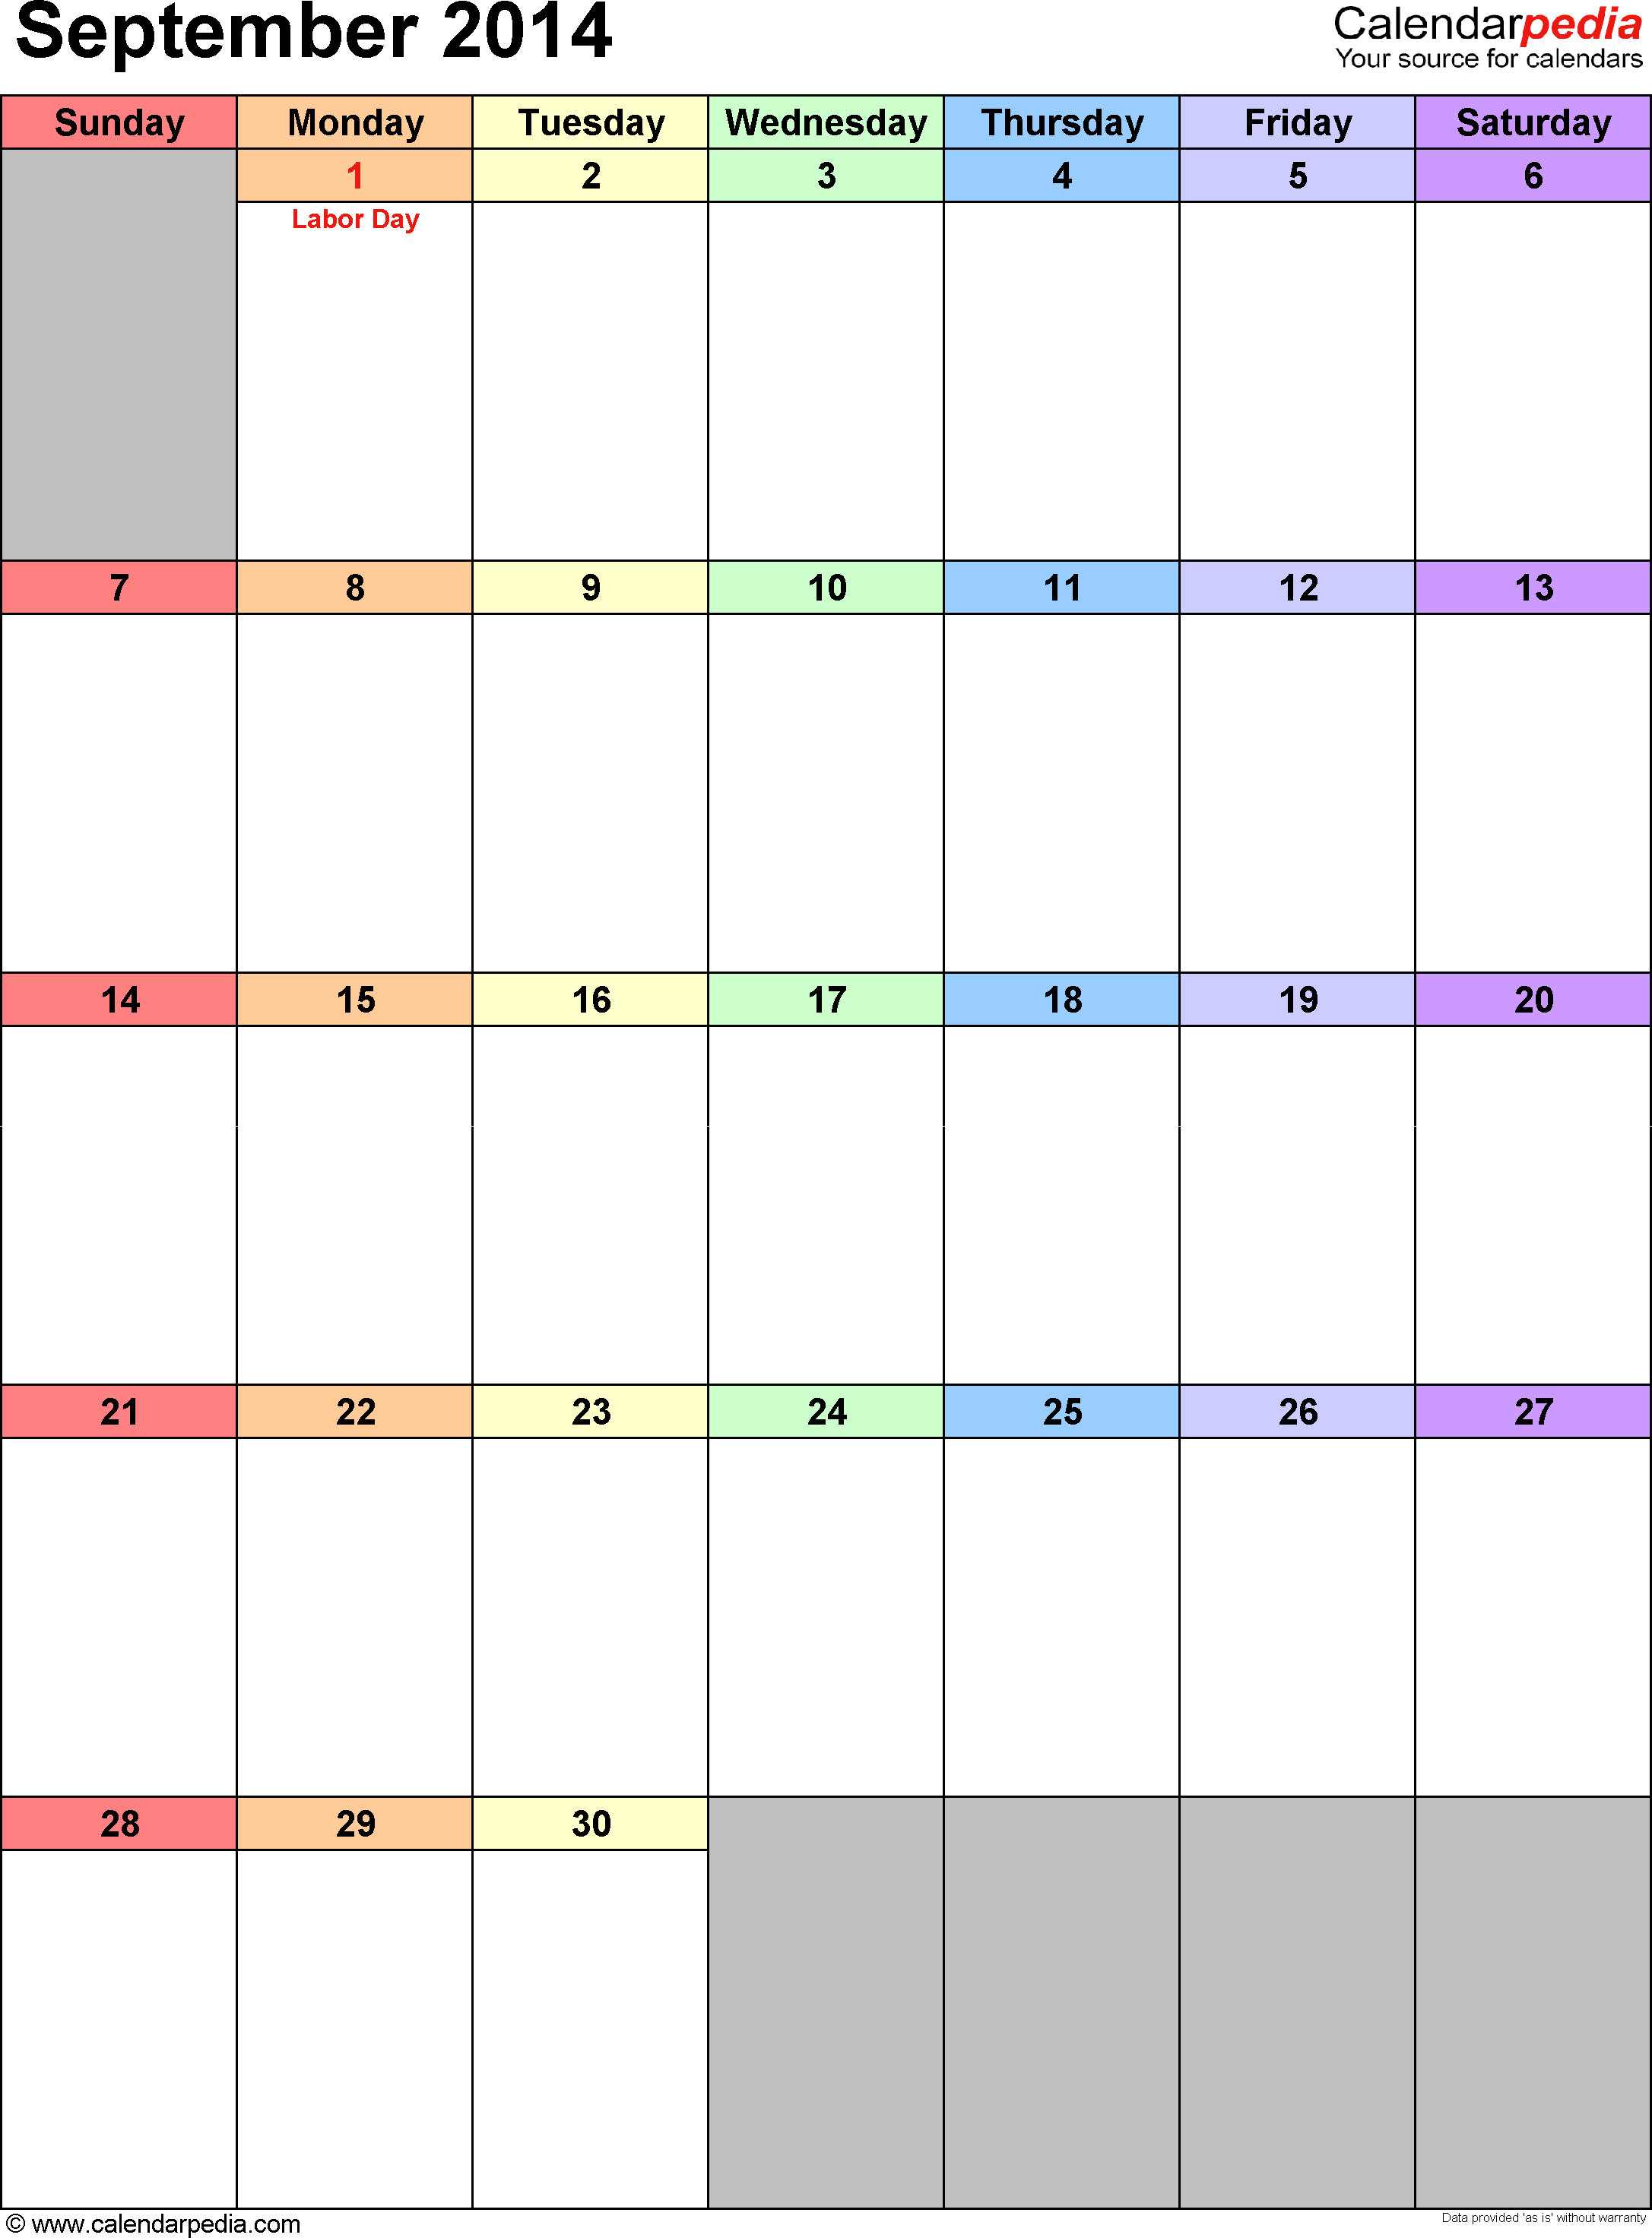 September 2014 calendar, portrait orientation, 'rainbow calendar', available as printable templates for Word, Excel and PDF